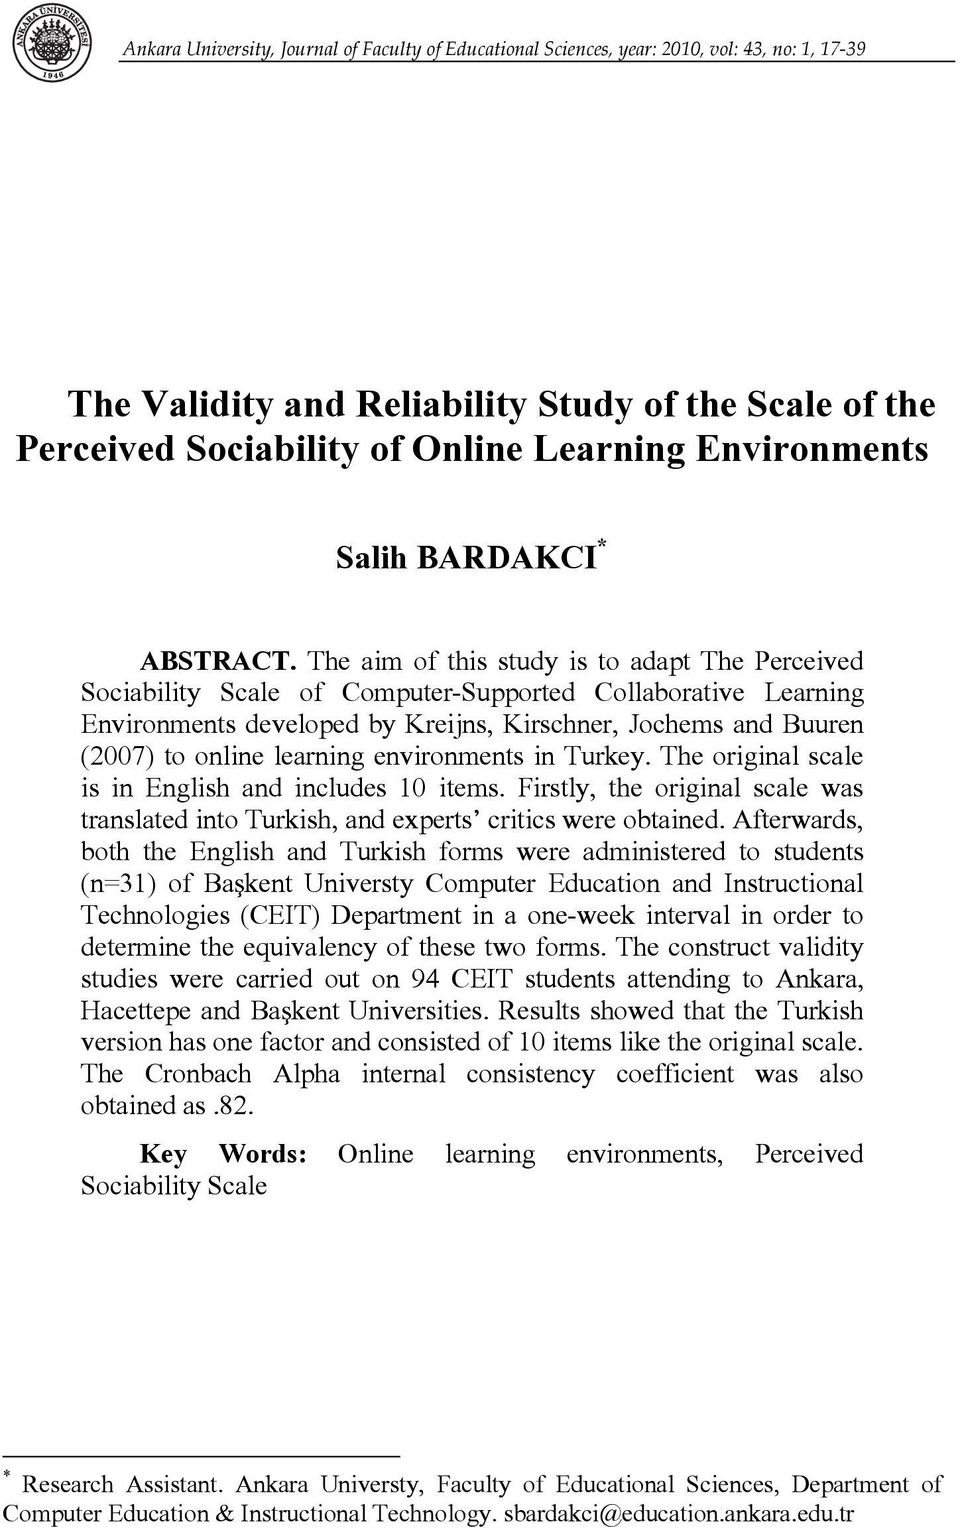 The aim of this study is to adapt The Perceived Sociability Scale of Computer-Supported Collaborative Learning Environments developed by Kreijns, Kirschner, Jochems and Buuren (2007) to online